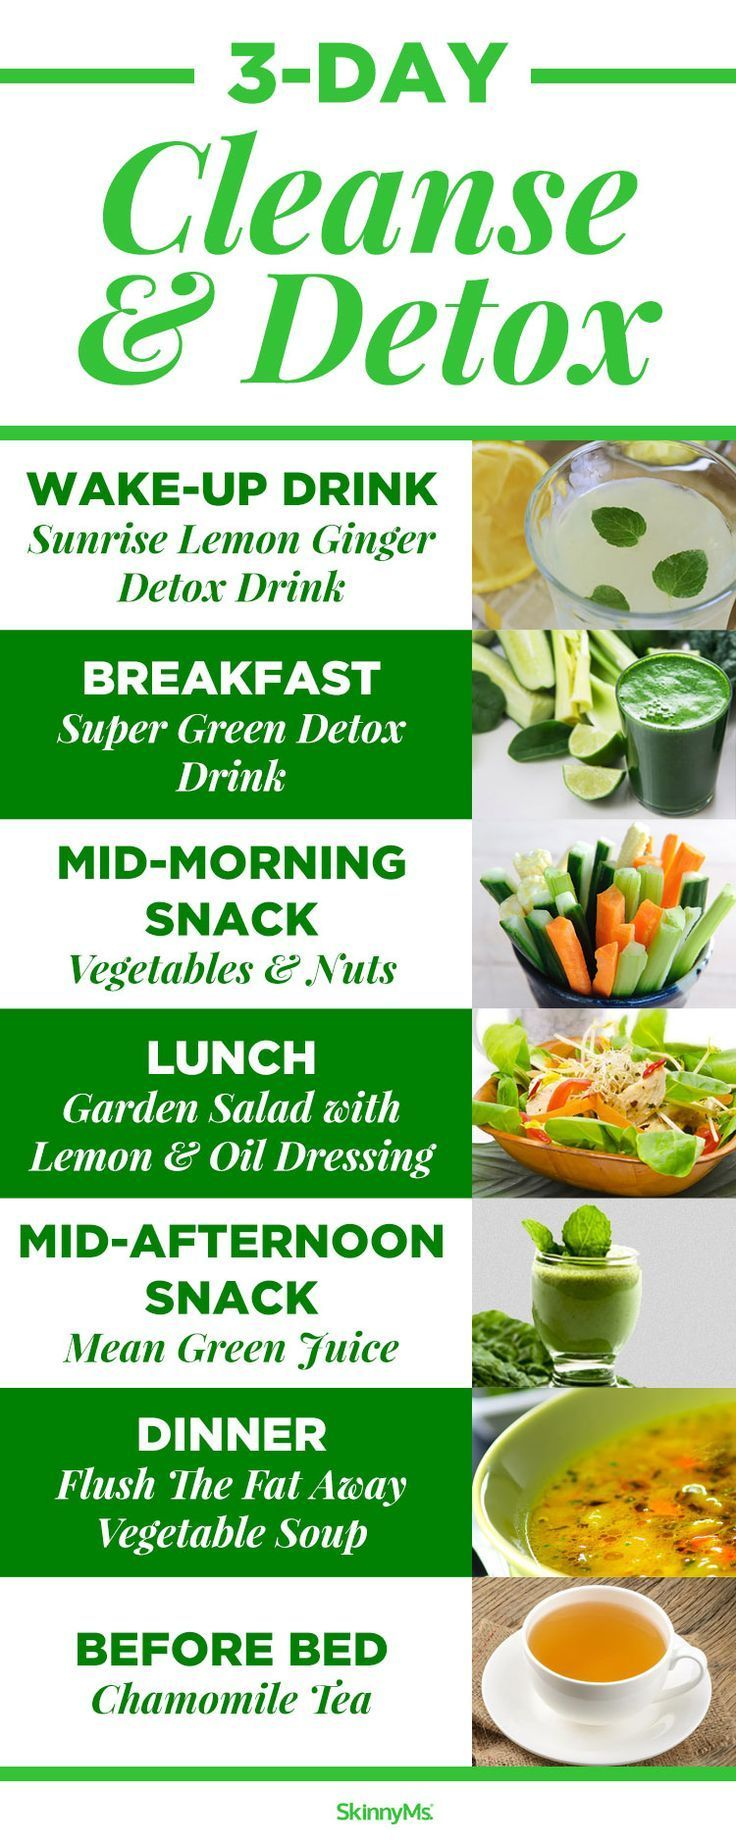 When I need to recharge my body I love the 3 Day Cleanse Detox...it is amazing!|...